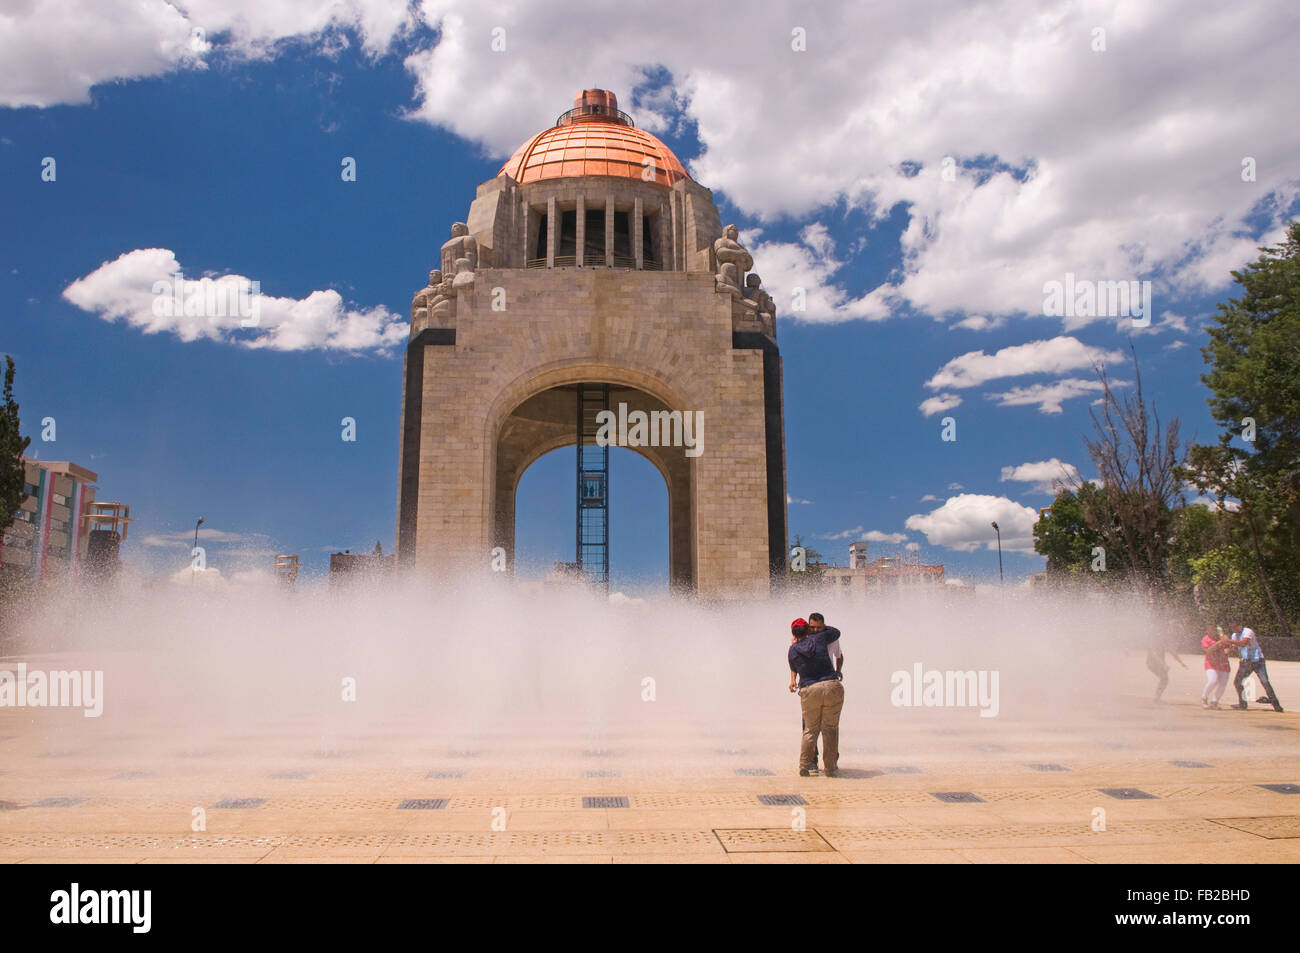 People relaxing in the fountain of the Arco de la Revolucion (Arch of the Revolution) in Mexico City, Mexico, South - Stock Image